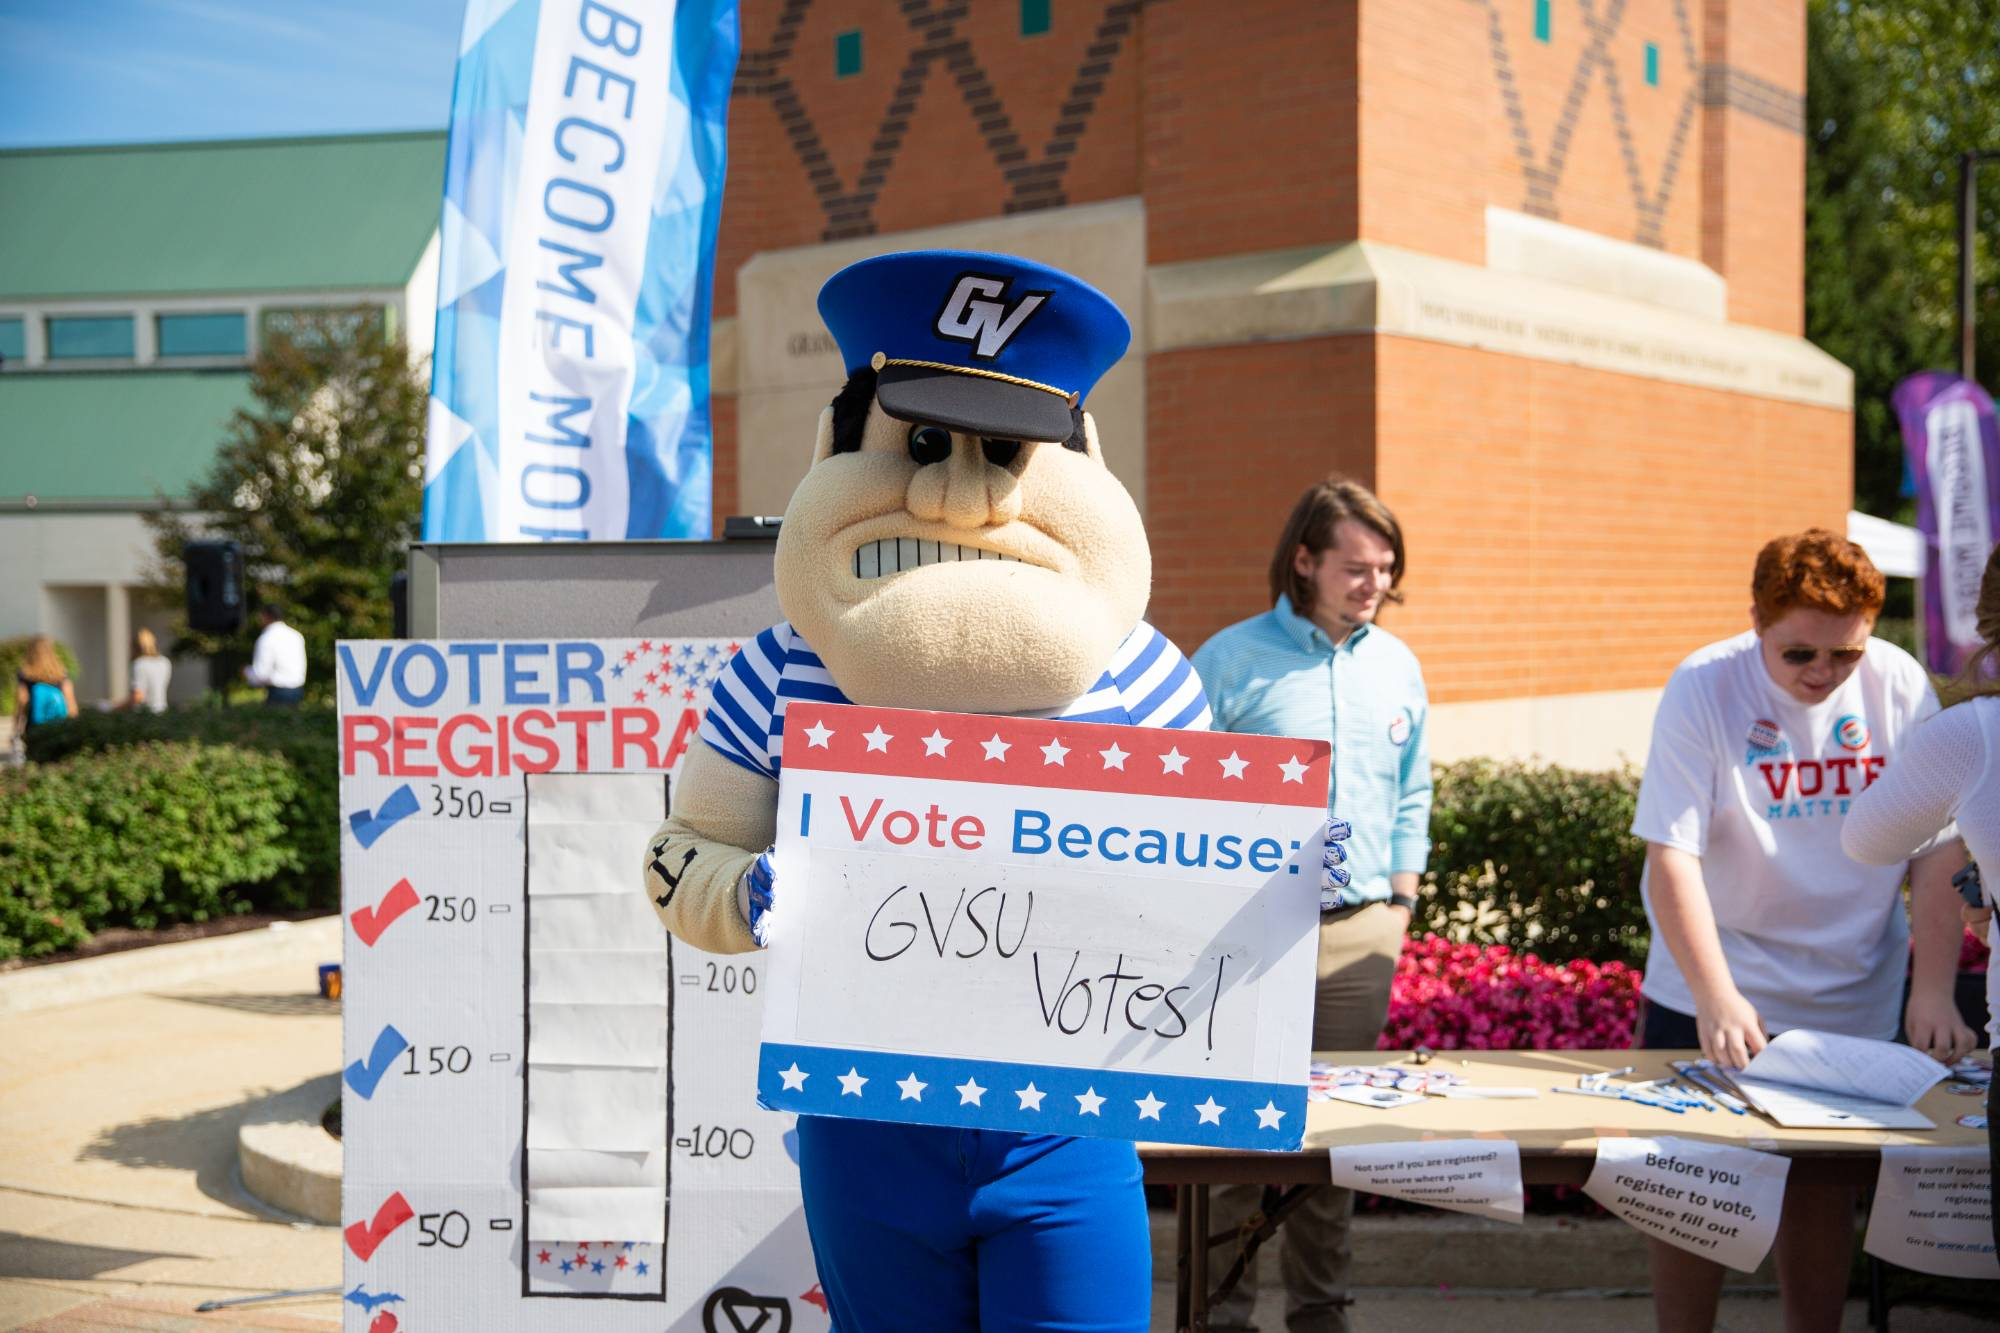 Louise the Laker holding a GVSU votes sing